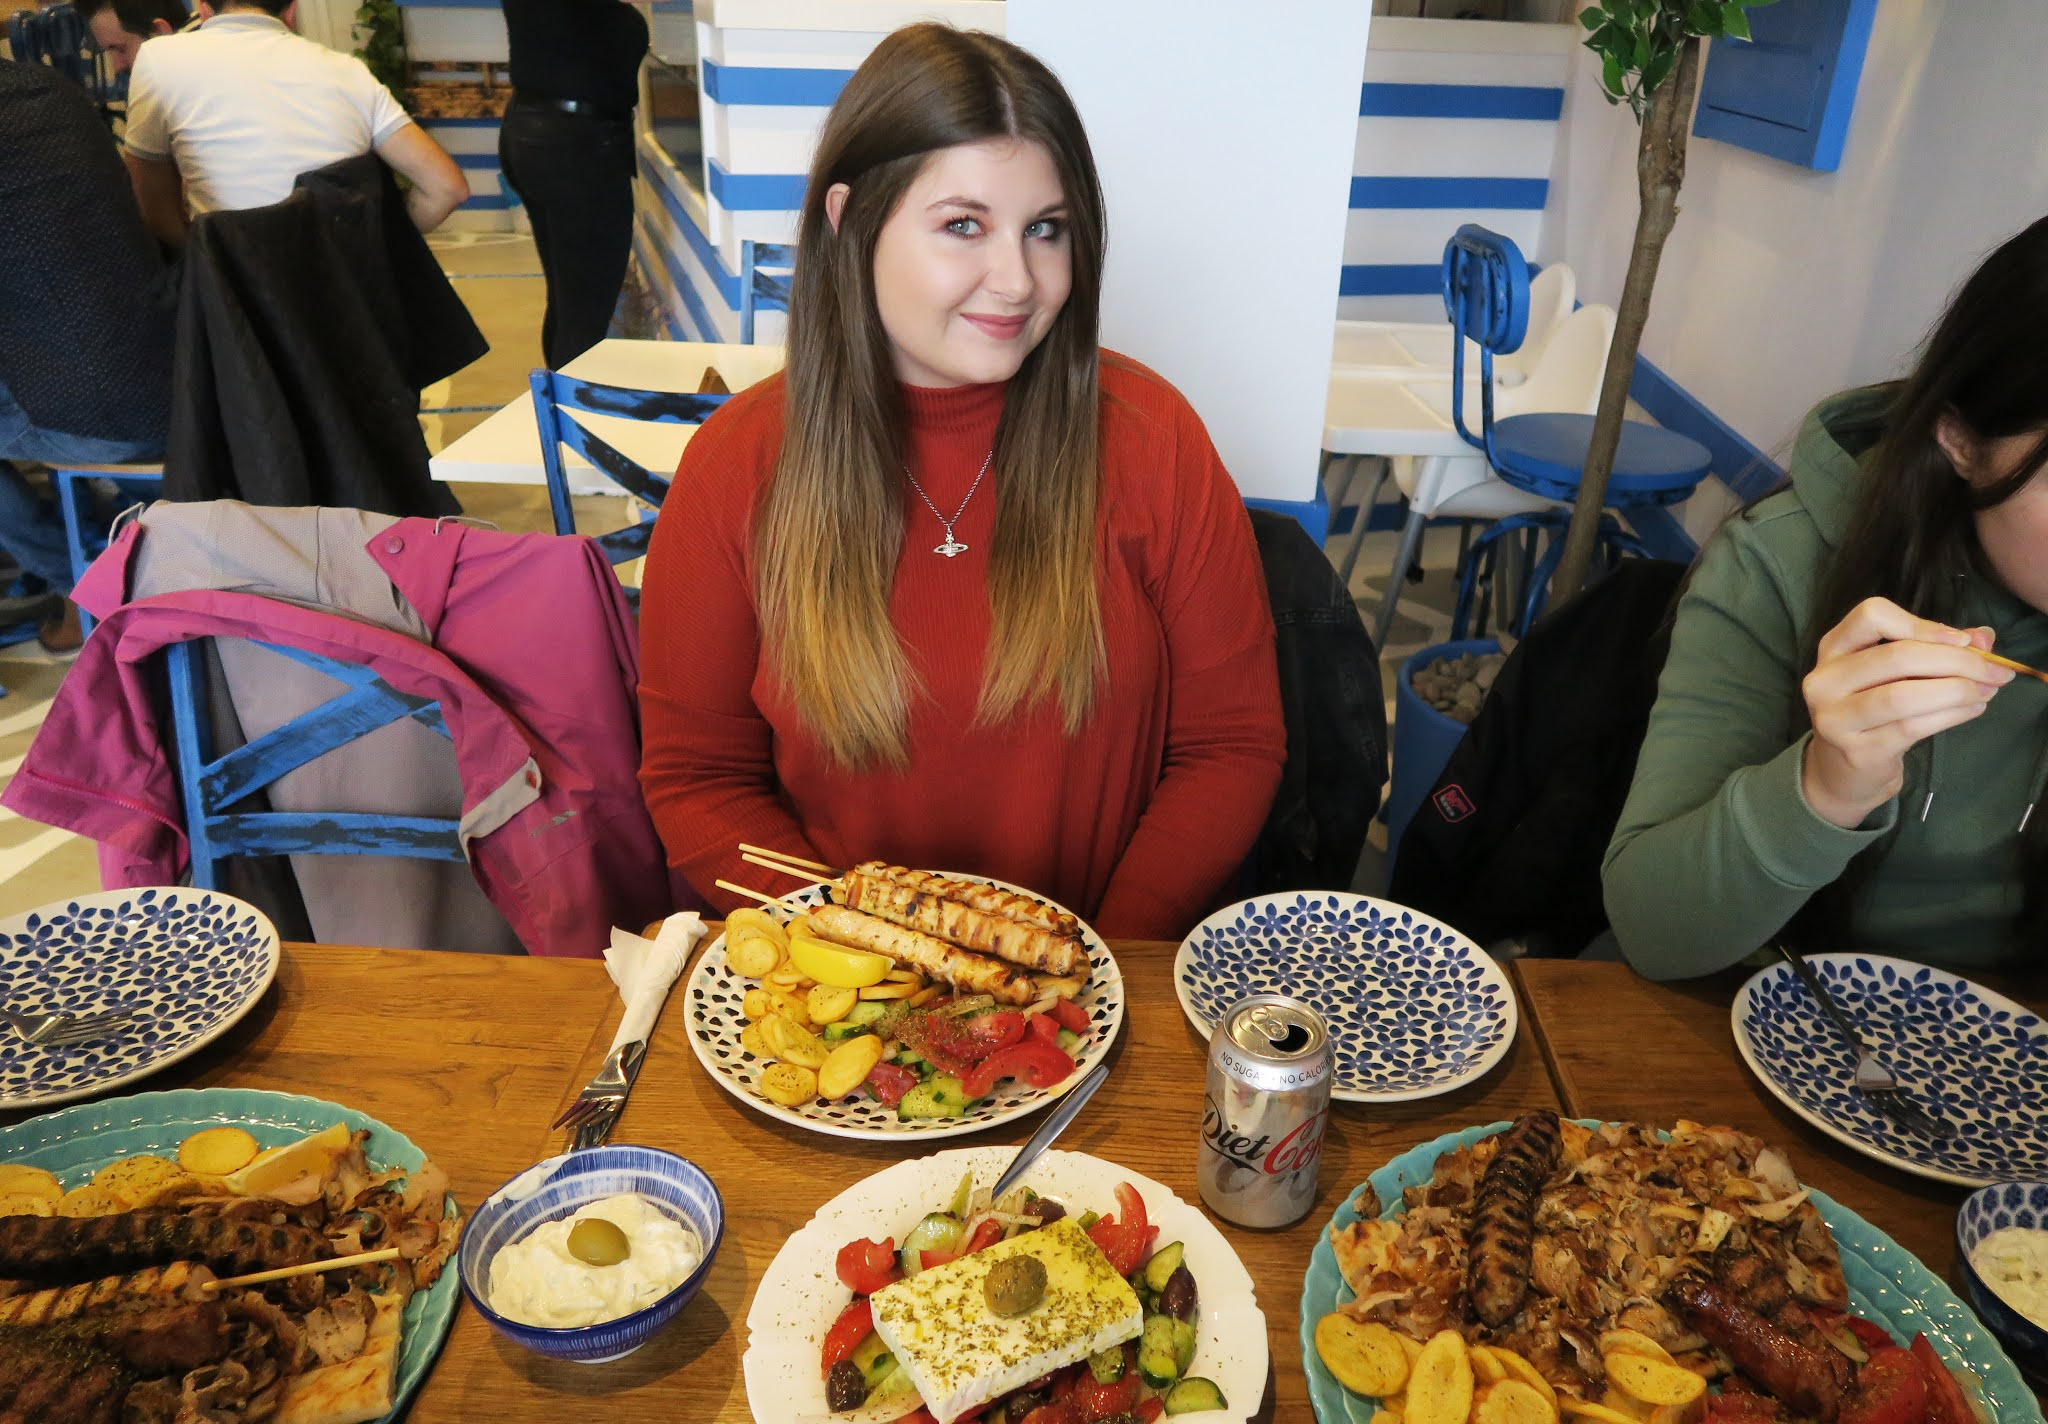 Grace is sat to a table inside Mr Souvlaki Restaurant in Stourbridge. In front of her is a plate of Chicken souvlaki, a bowl of salar, and a mixed grill platter.